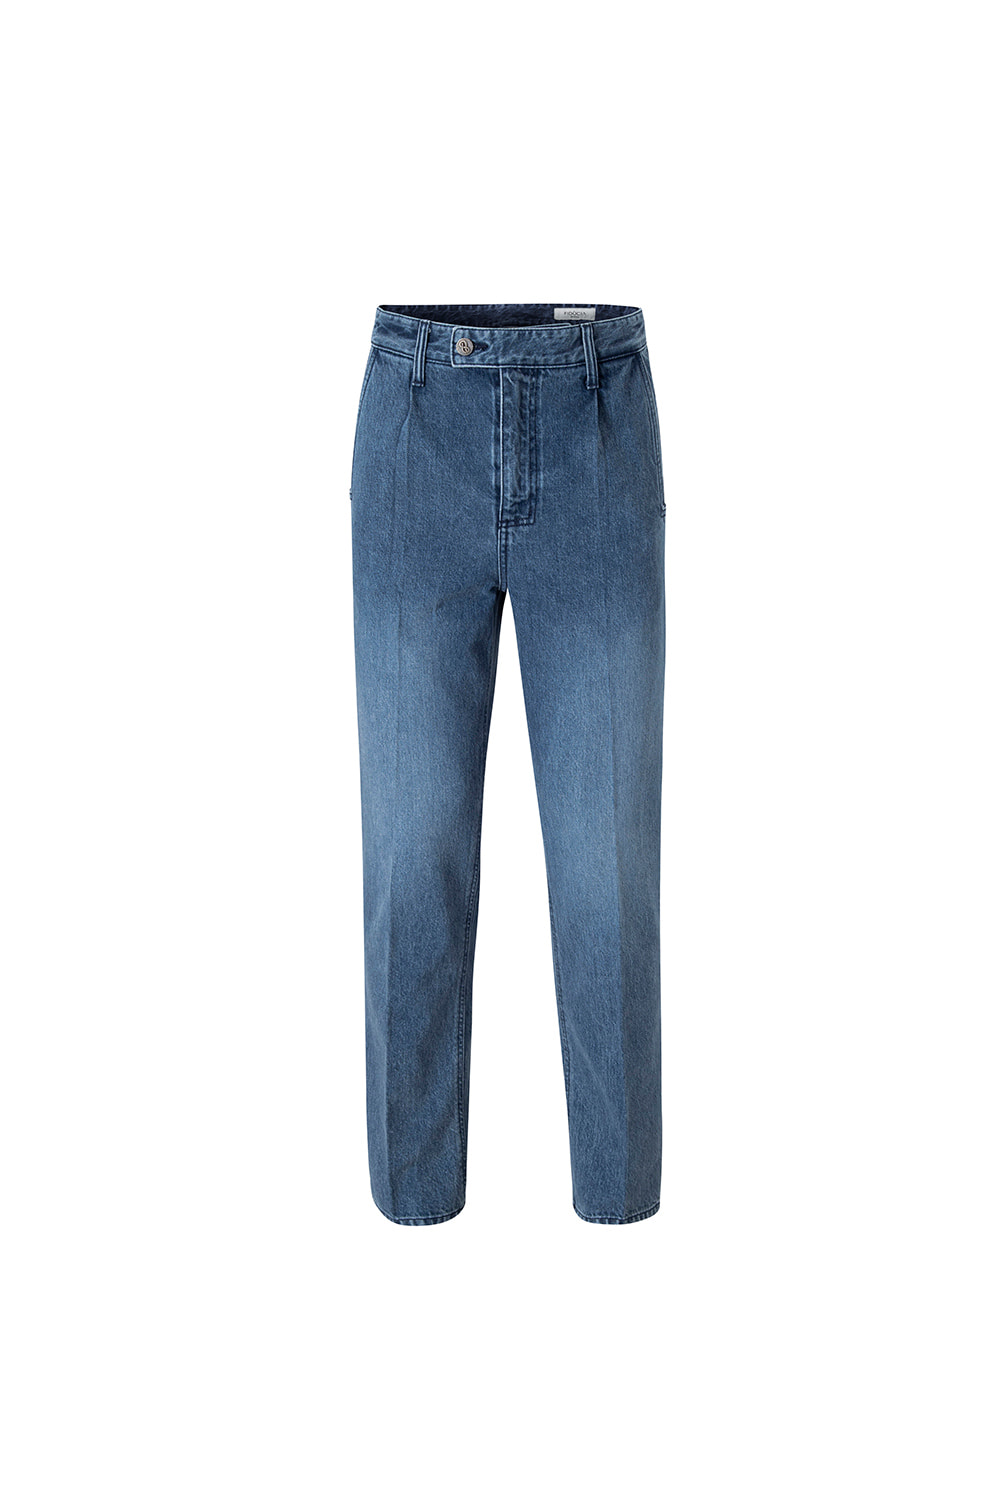 [피두치아]NUOVO MIDDLE BLUE JEAN